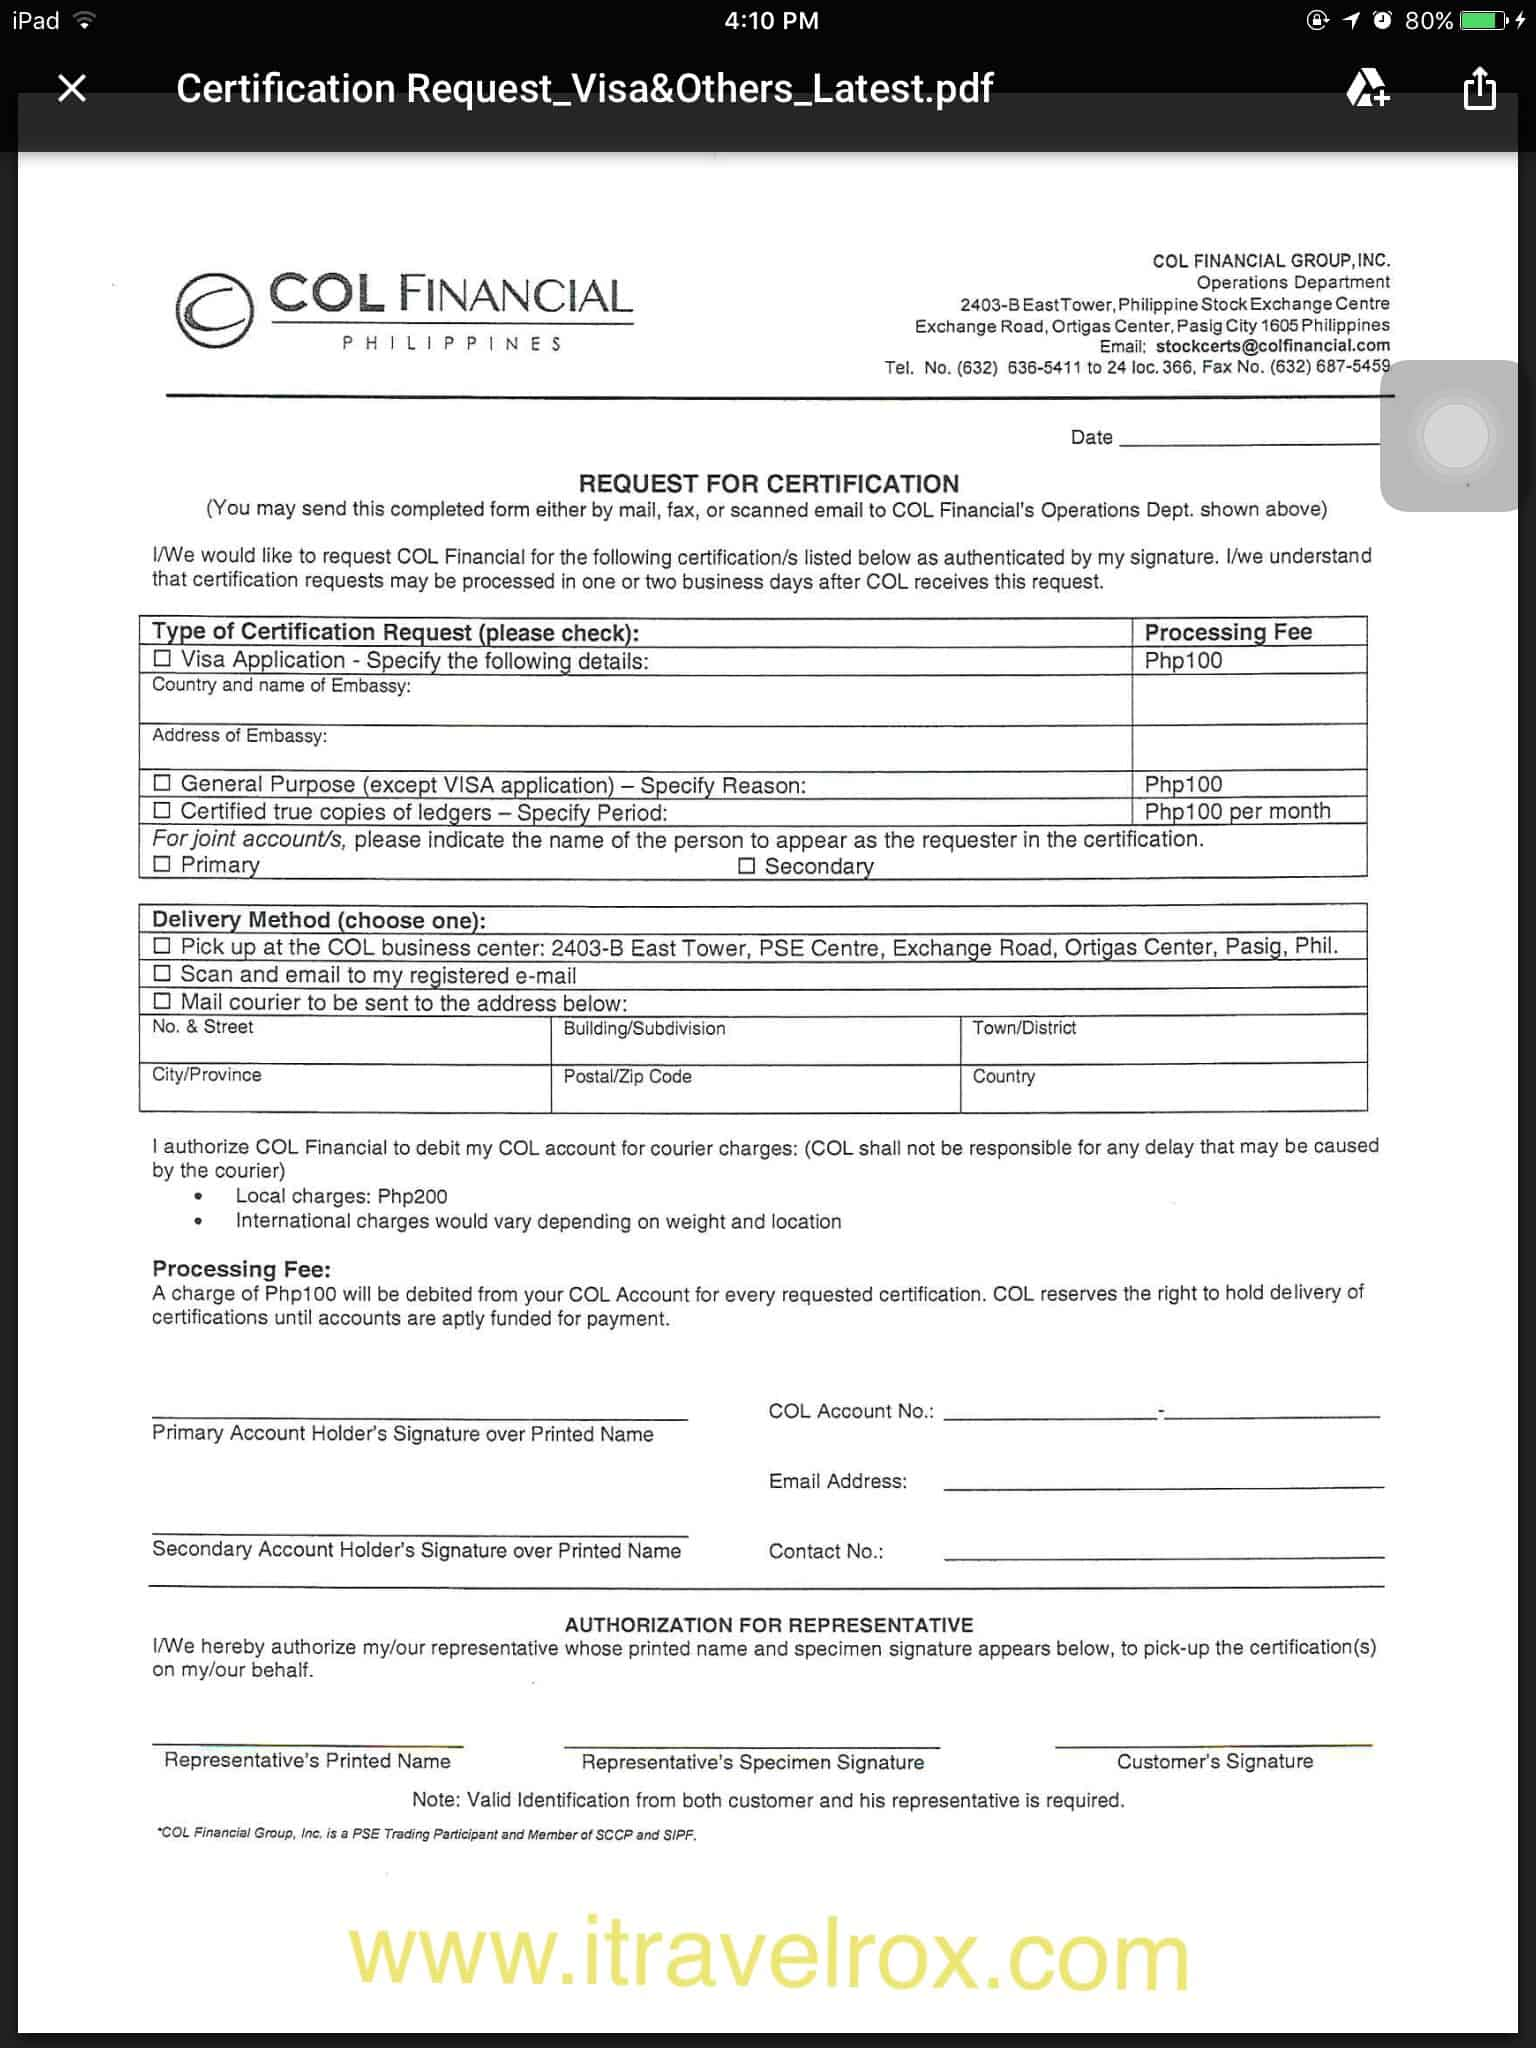 How To Request Stock Certificate From Col Financial Philippines